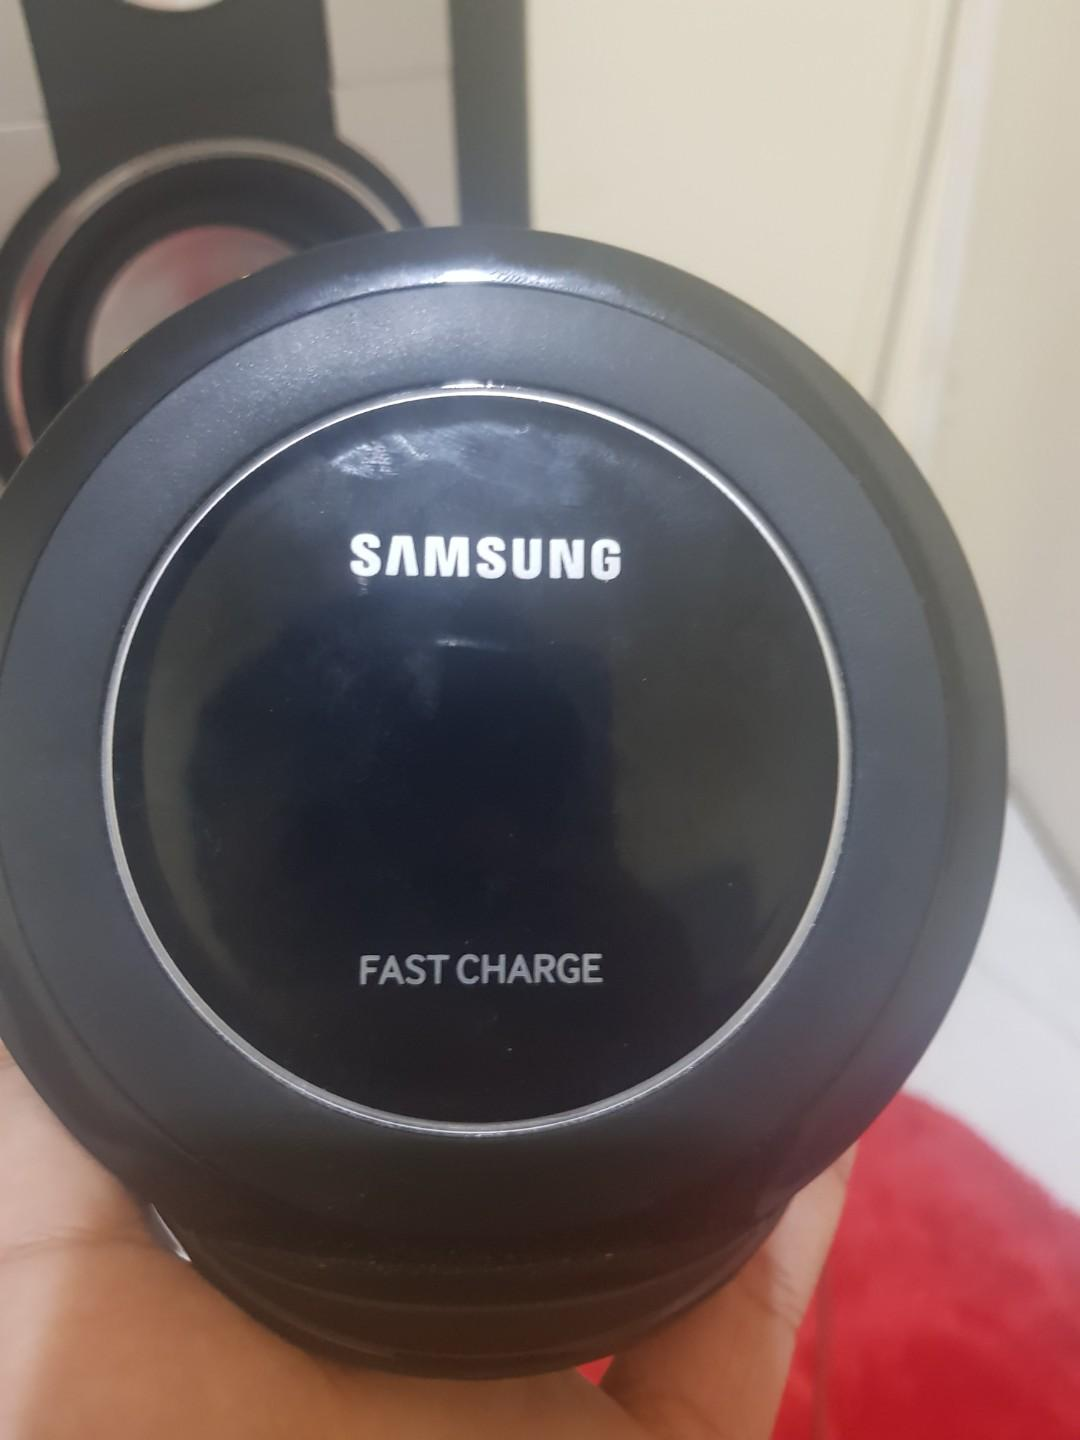 Fast charge samsung